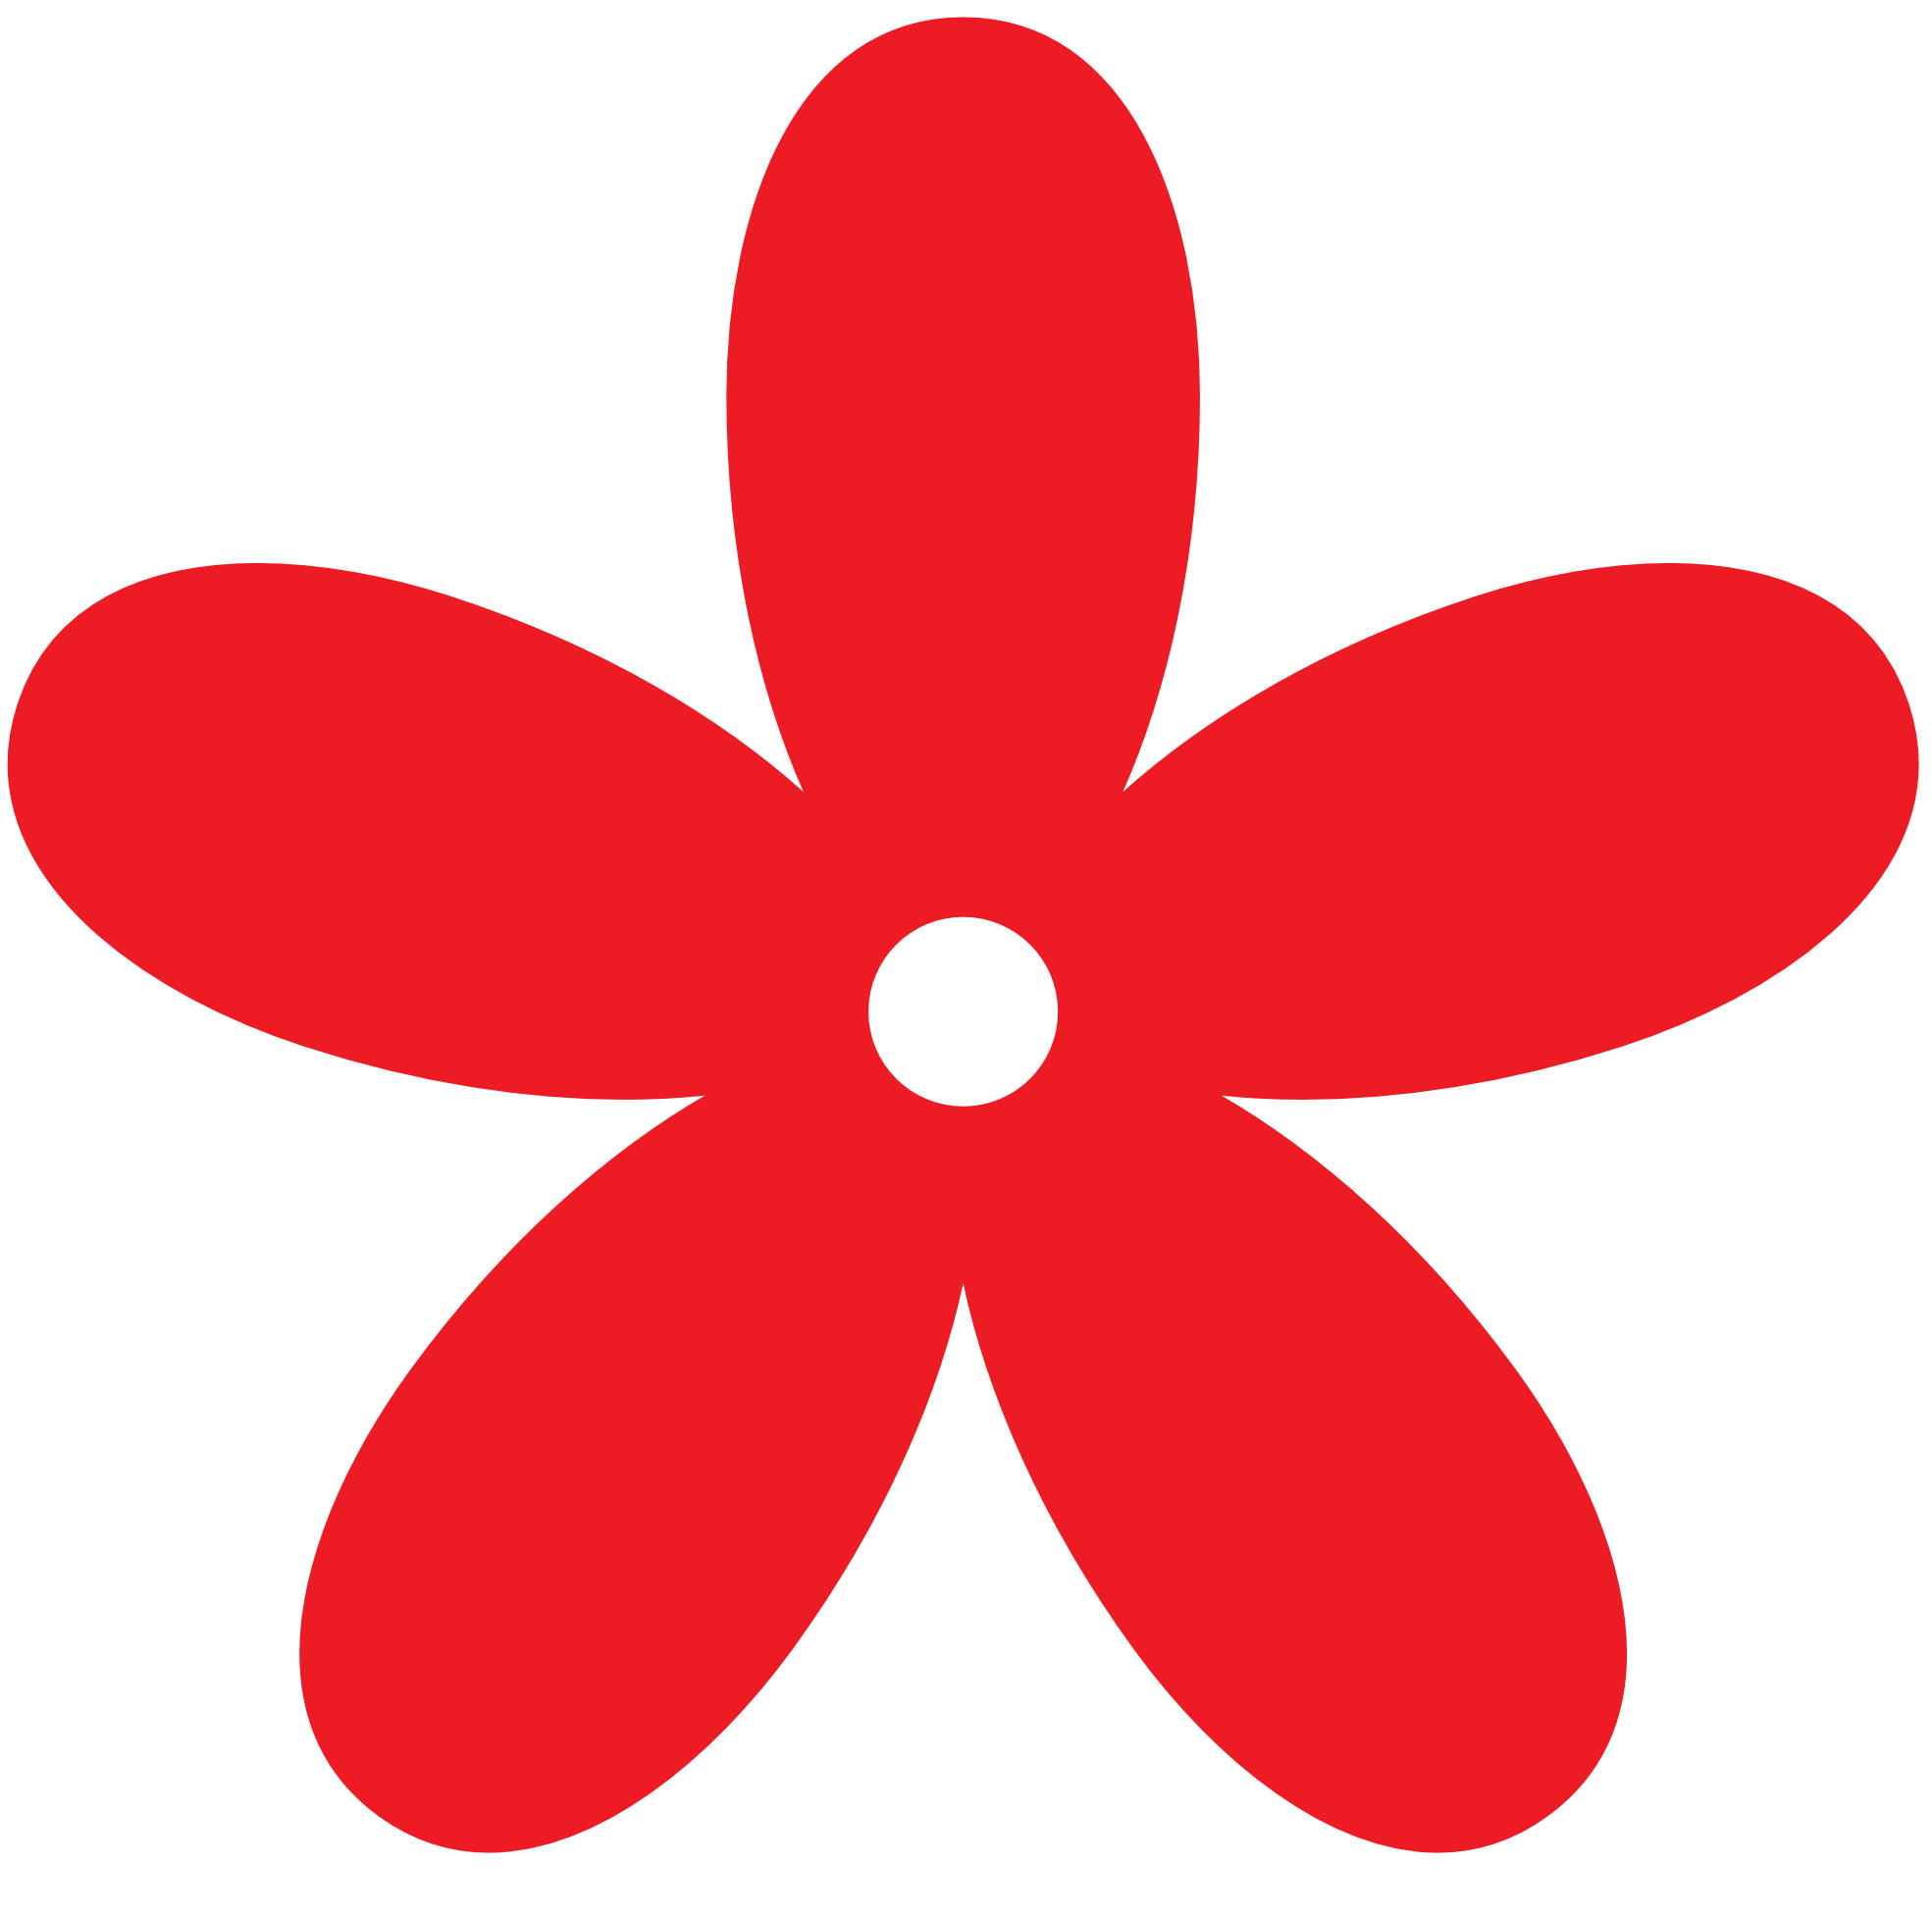 A red flower clipart #20